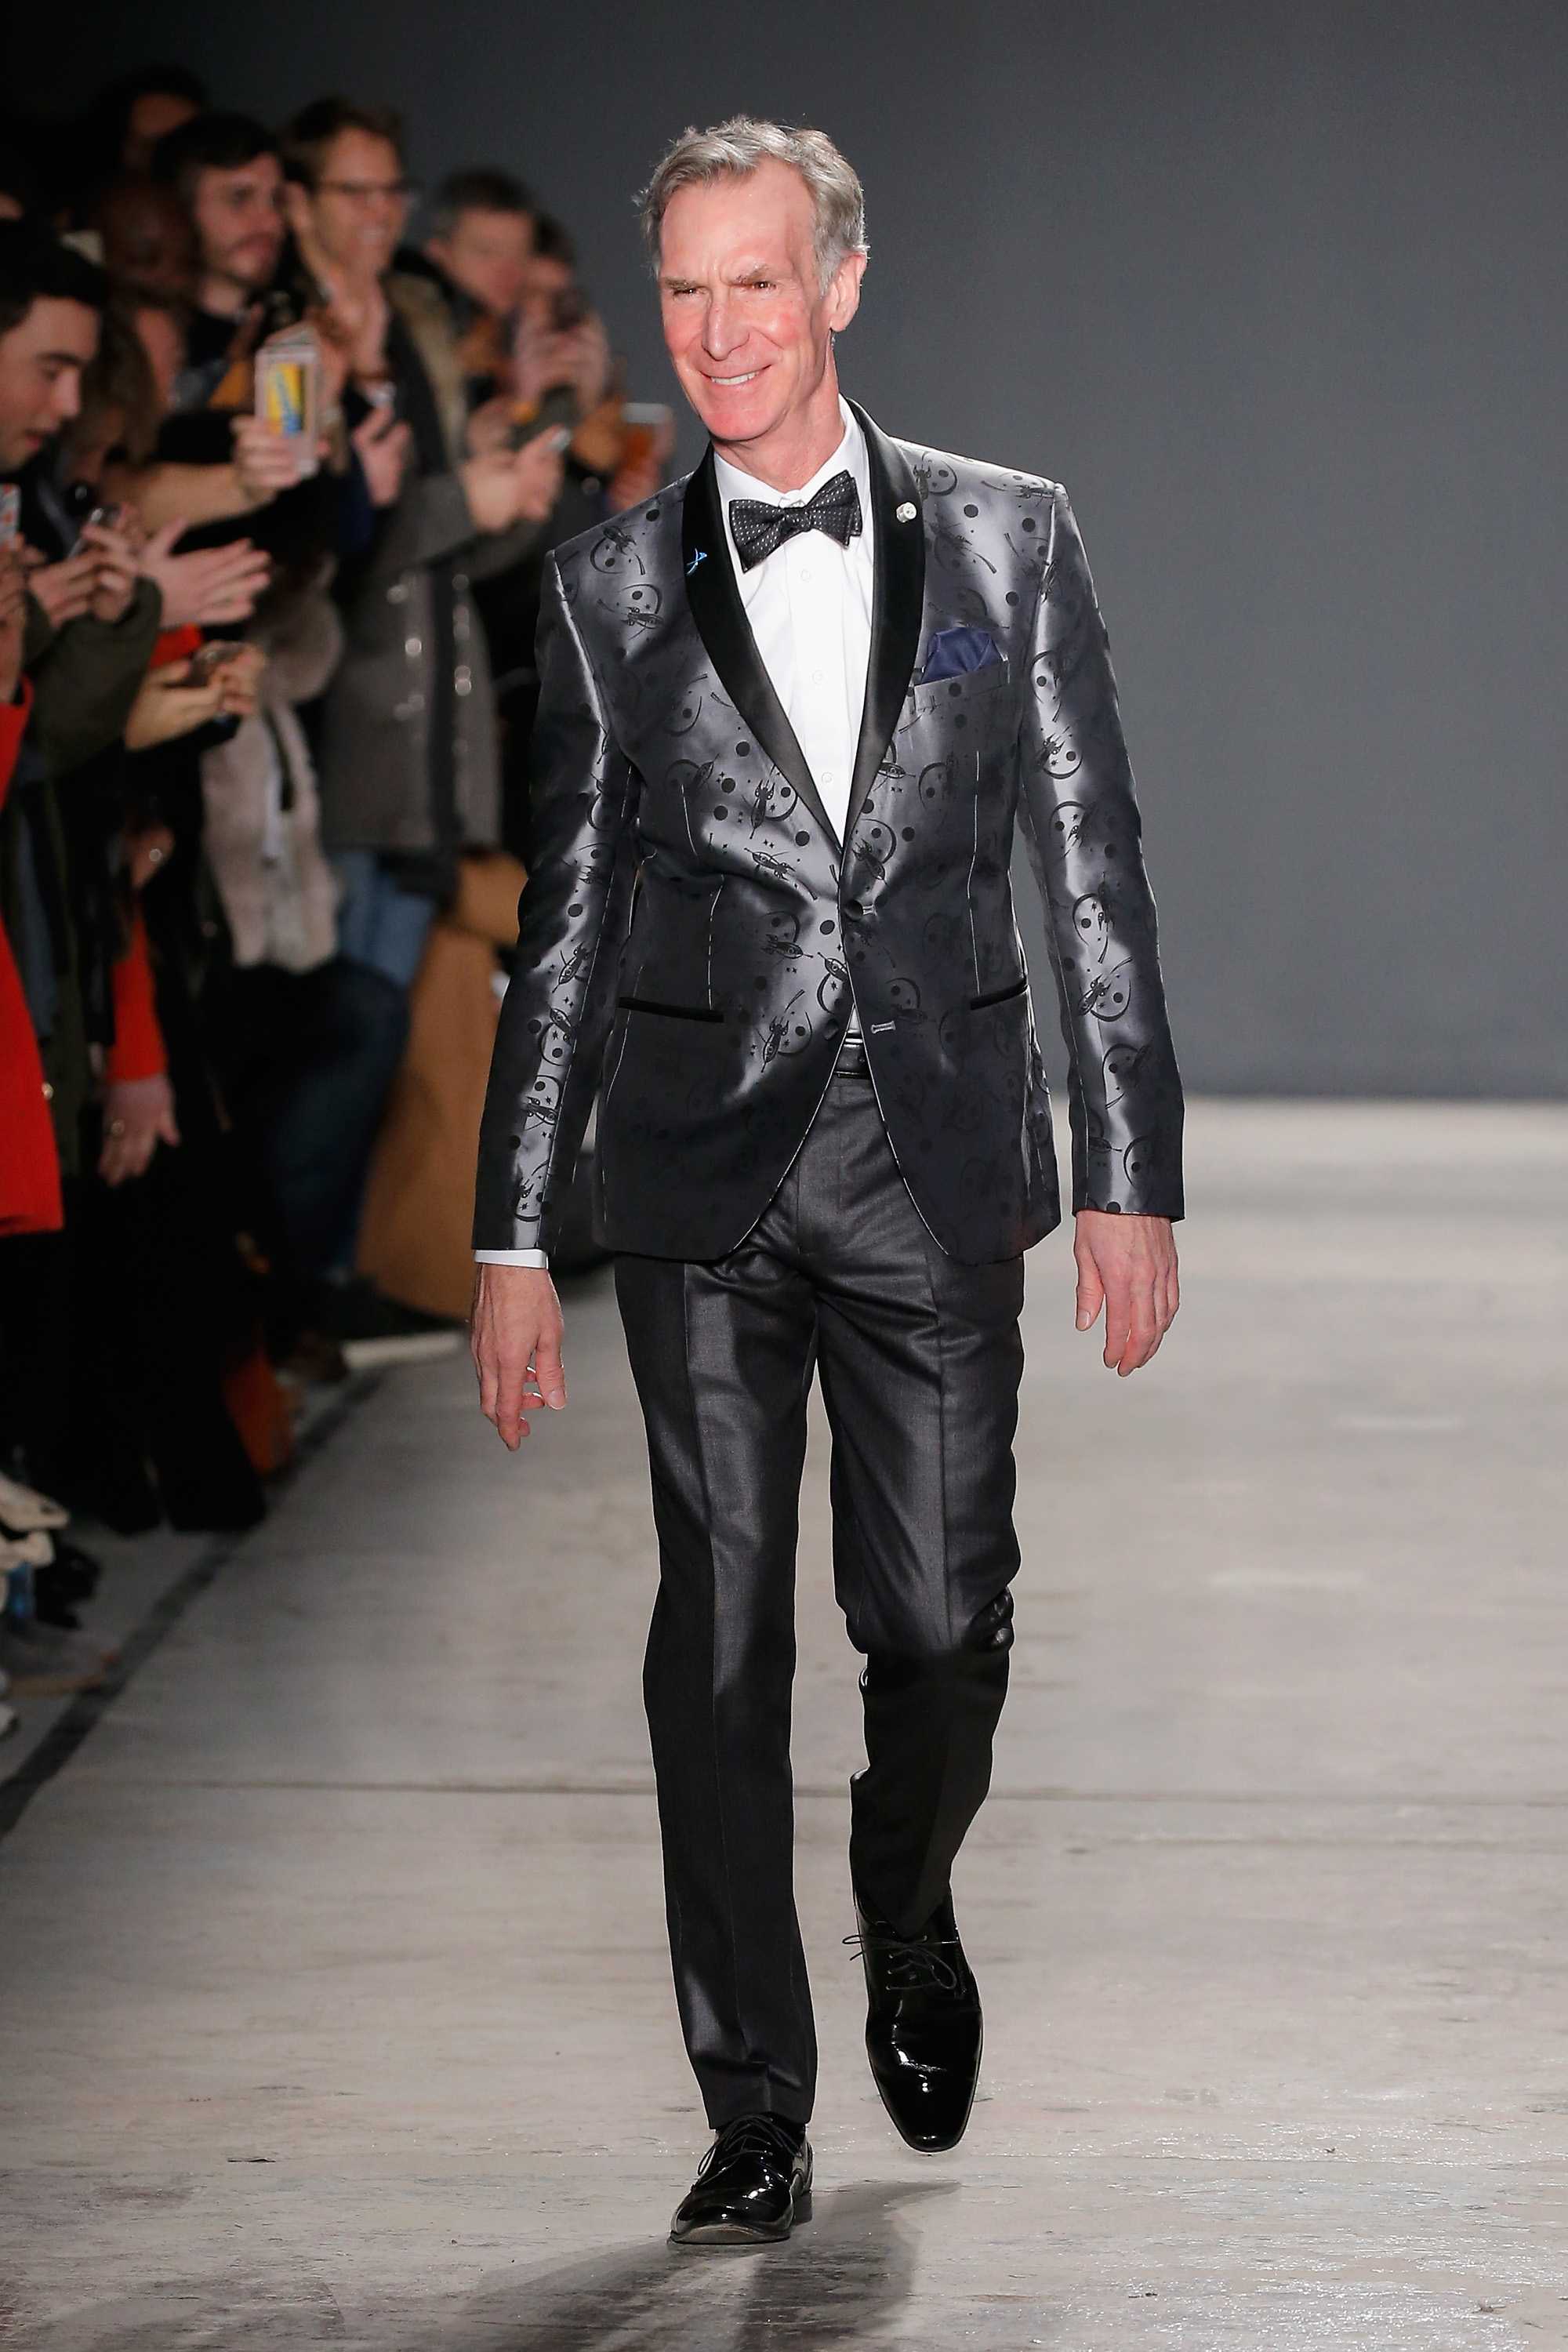 Bill Nye walks the runway at the Nick Graham NYFW Men's F/W '17 show on January 31, 2017 in New York City.